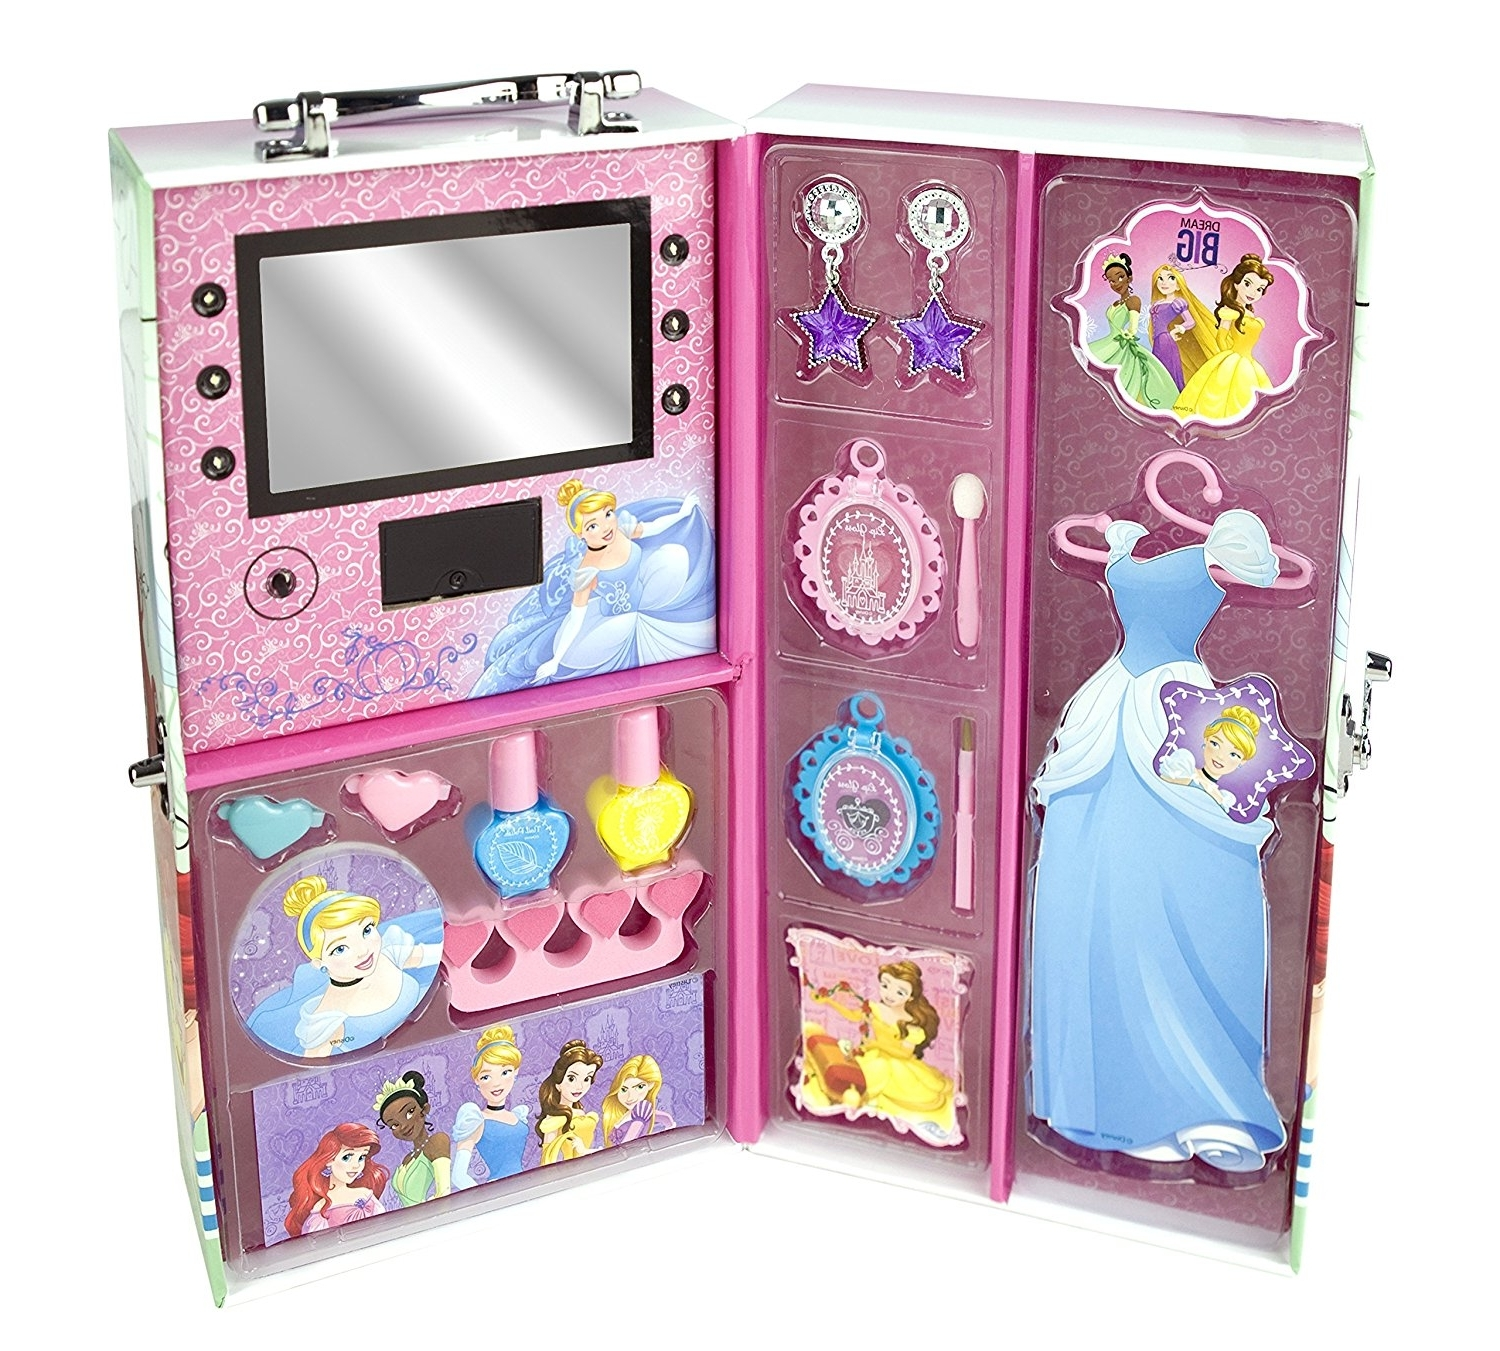 Best And Newest Princess Wardrobes Intended For Disney Princess Dress To Impress Princess Beauty Wardrobe: Amazon (View 3 of 15)